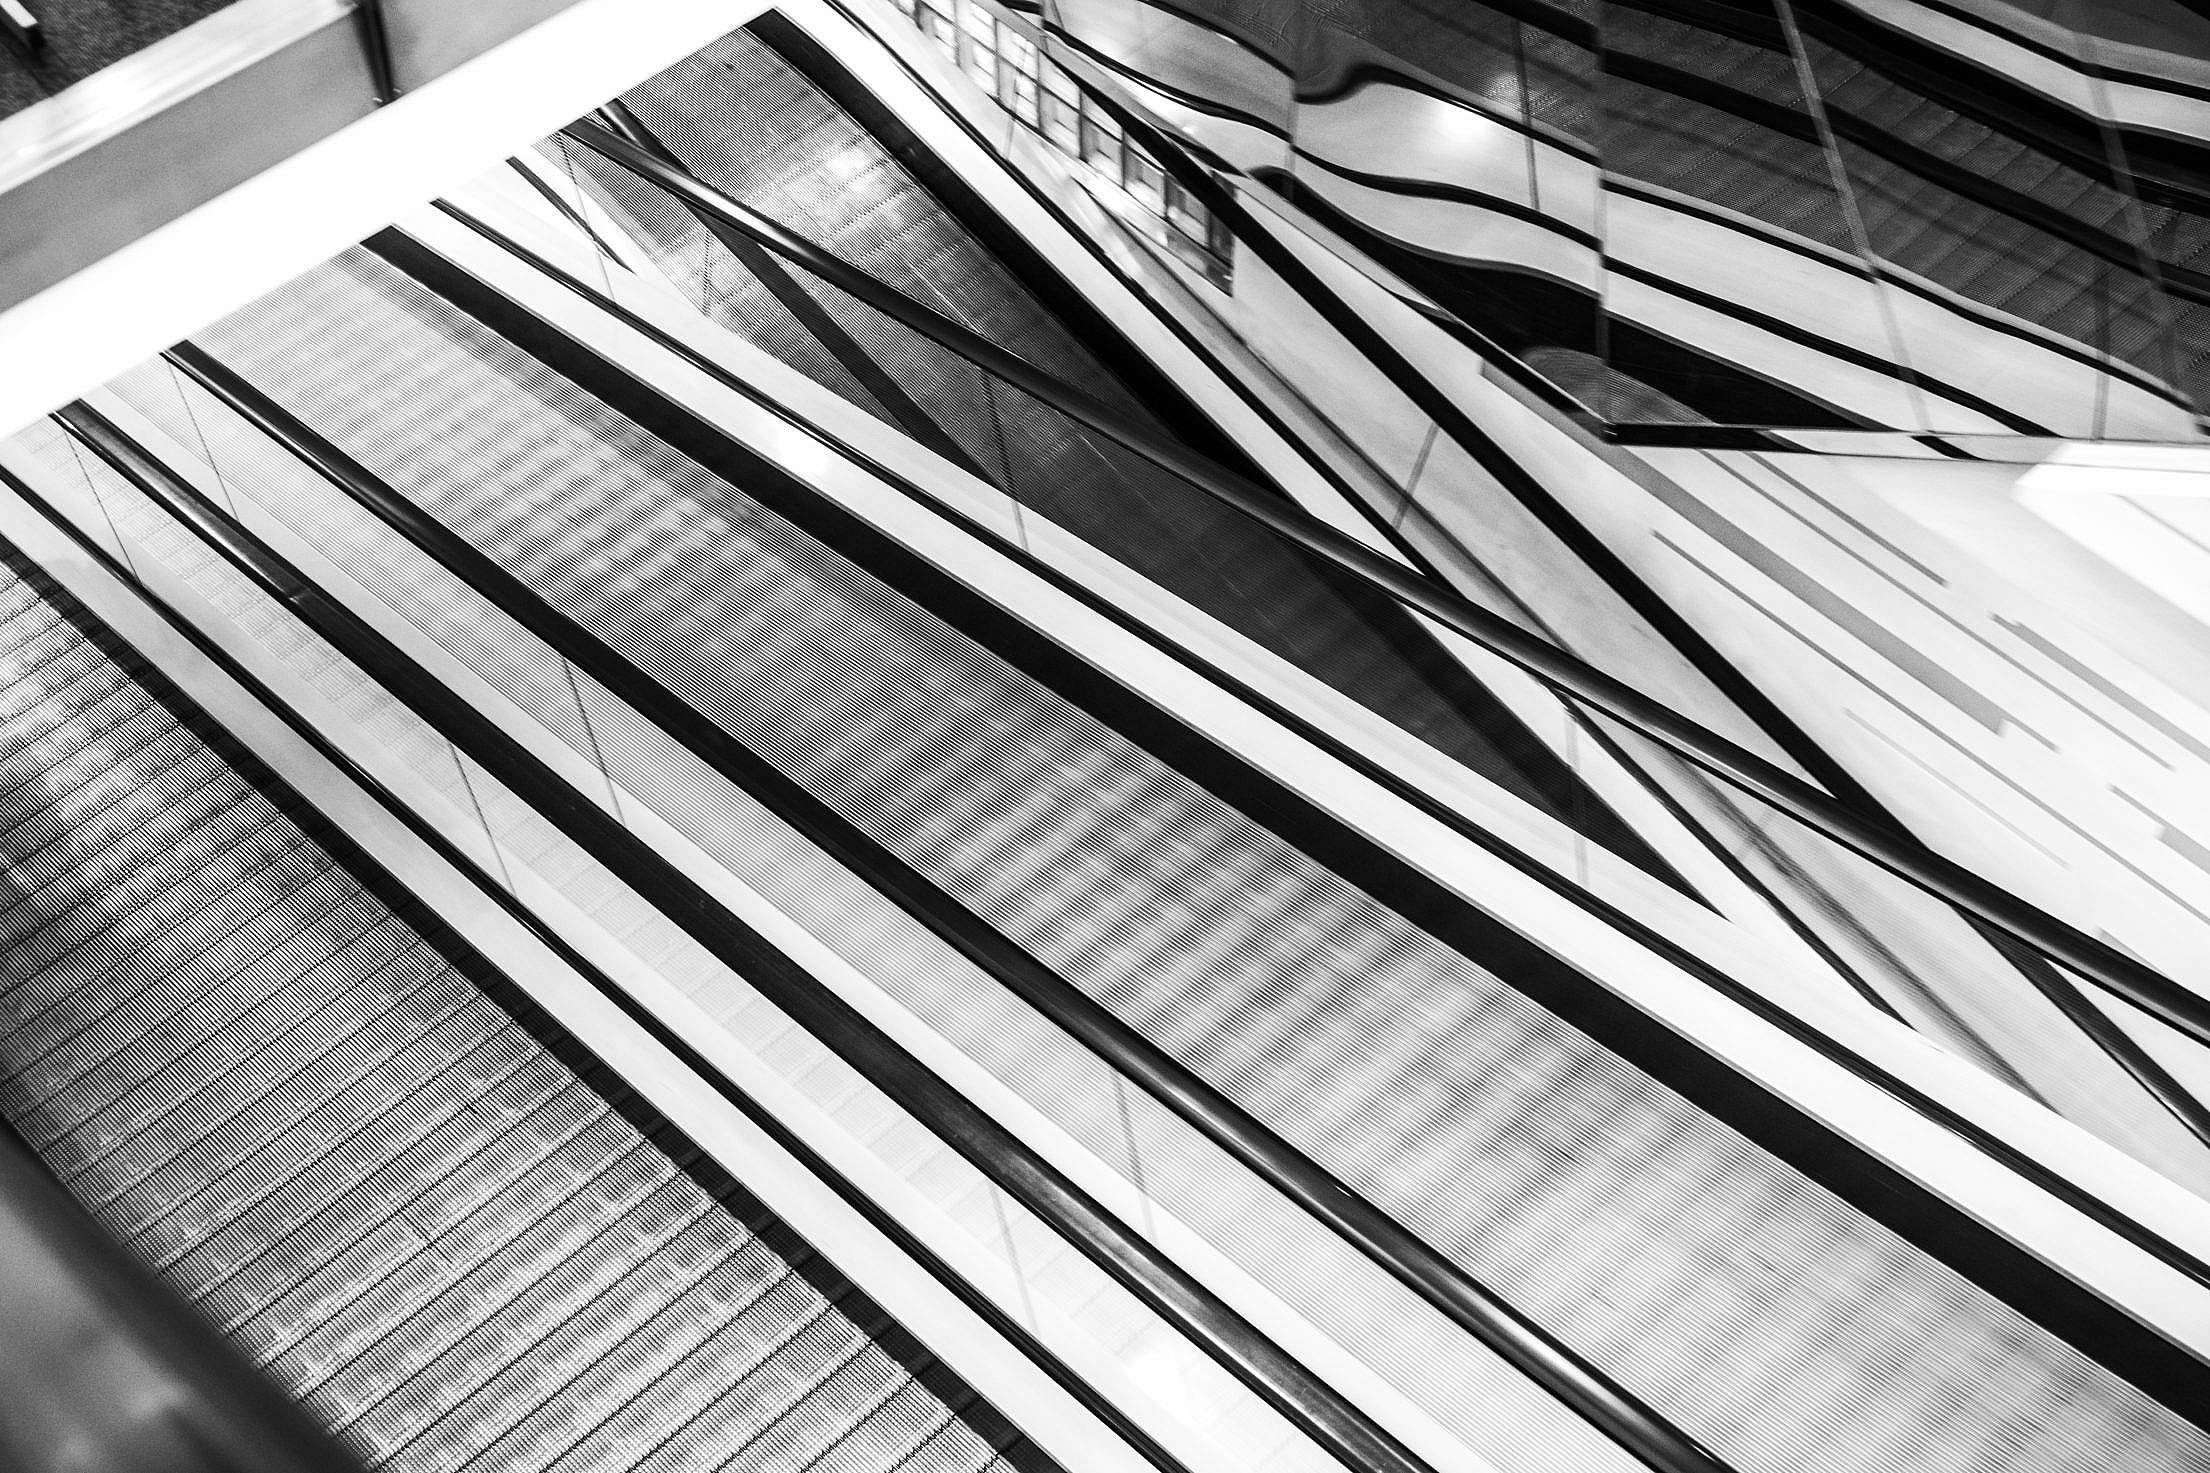 Abstract Black and White Geometric Background (Escalators) Free Stock Photo